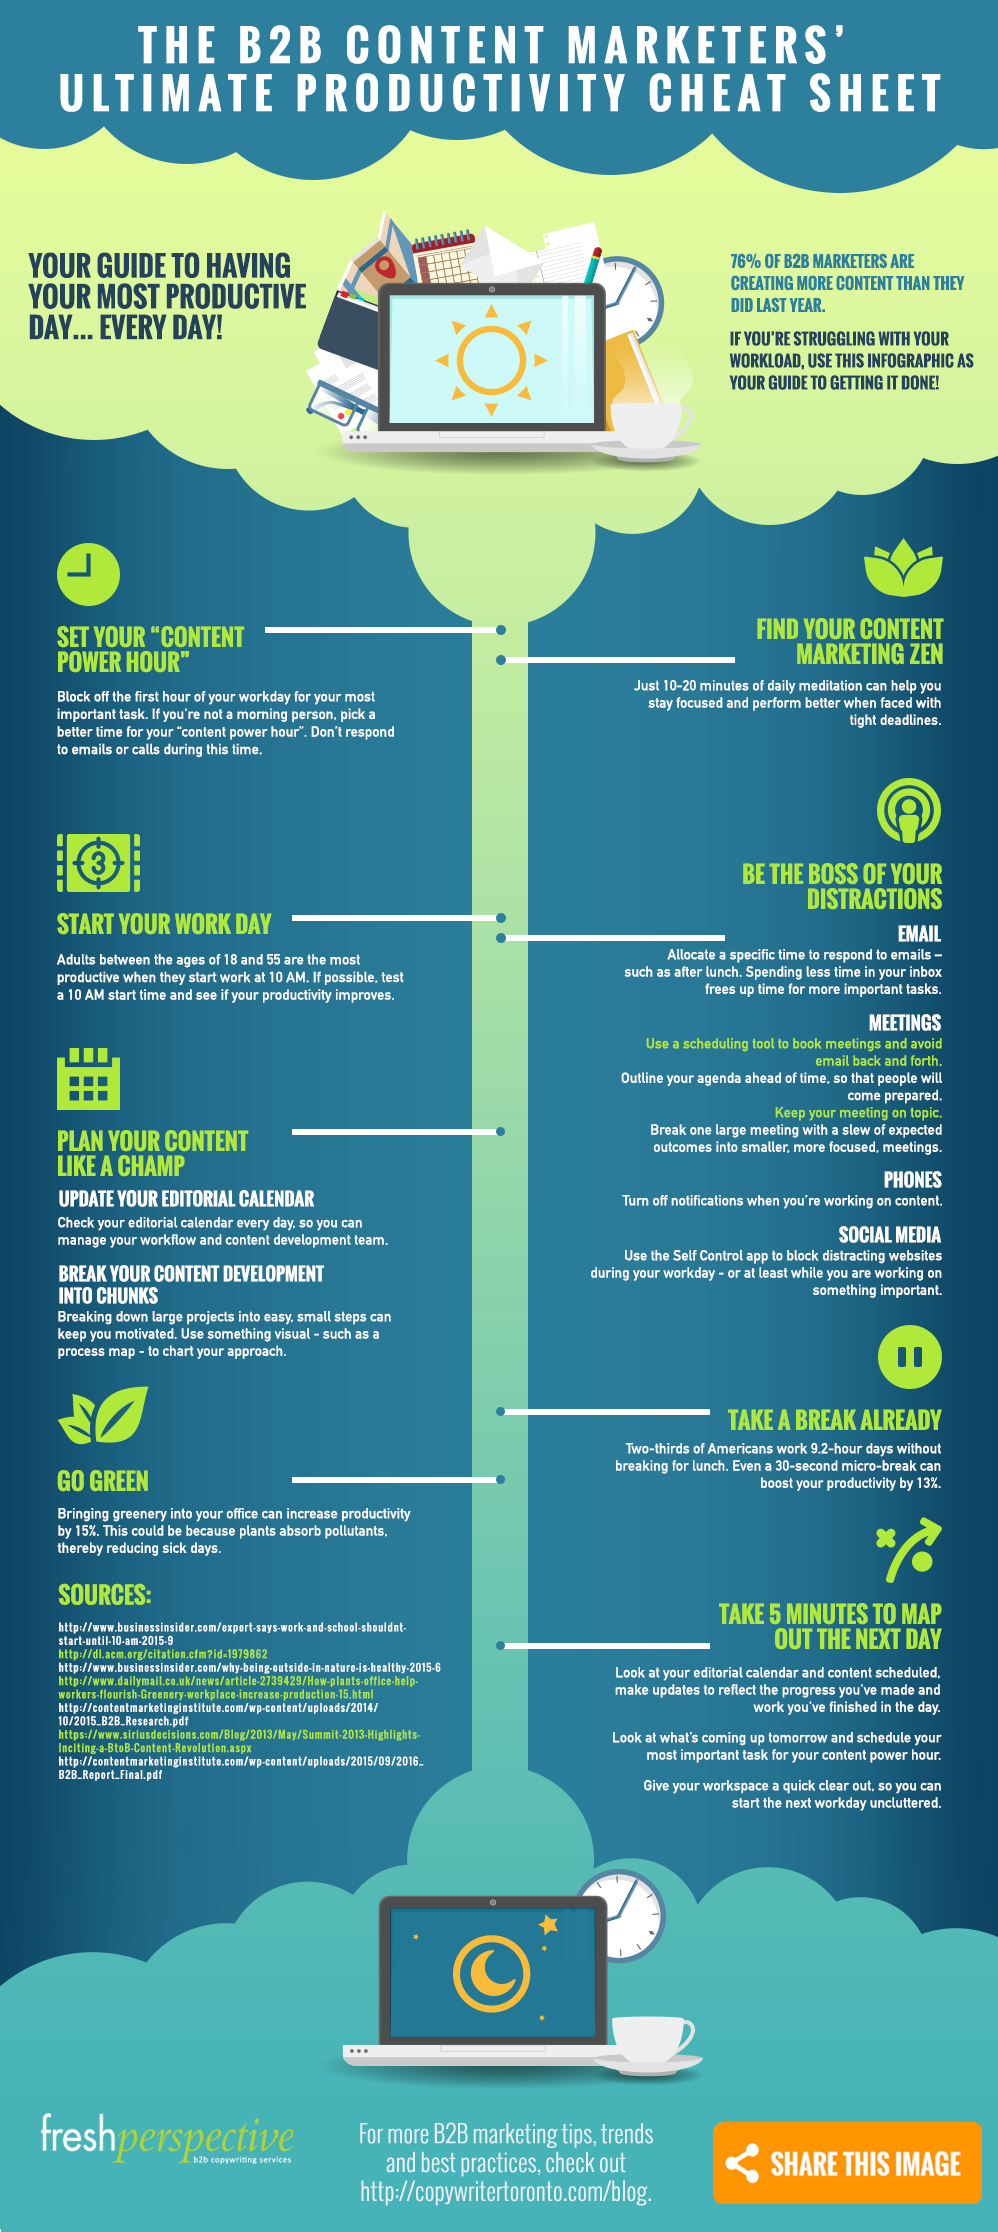 The B2B Content Marketers' Ultimate Productivity Cheat Sheet Infographic